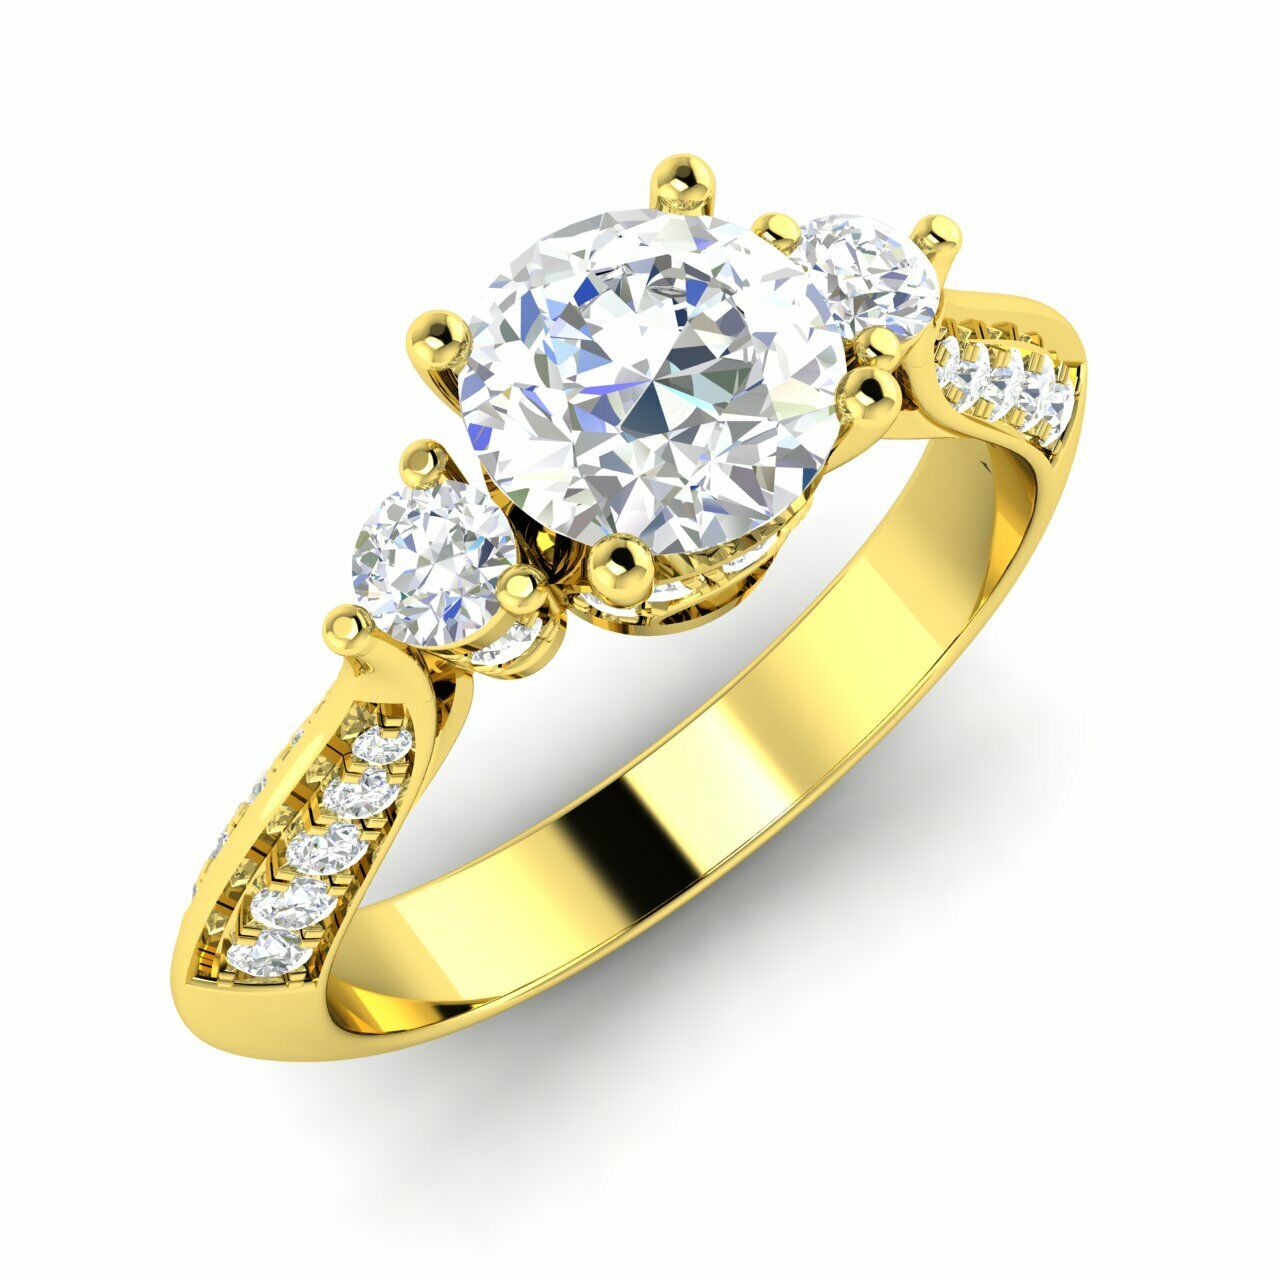 Certified 1.11 Ctw Natural Diamond Three Stone Engagement Ring 14k Yellow Gold